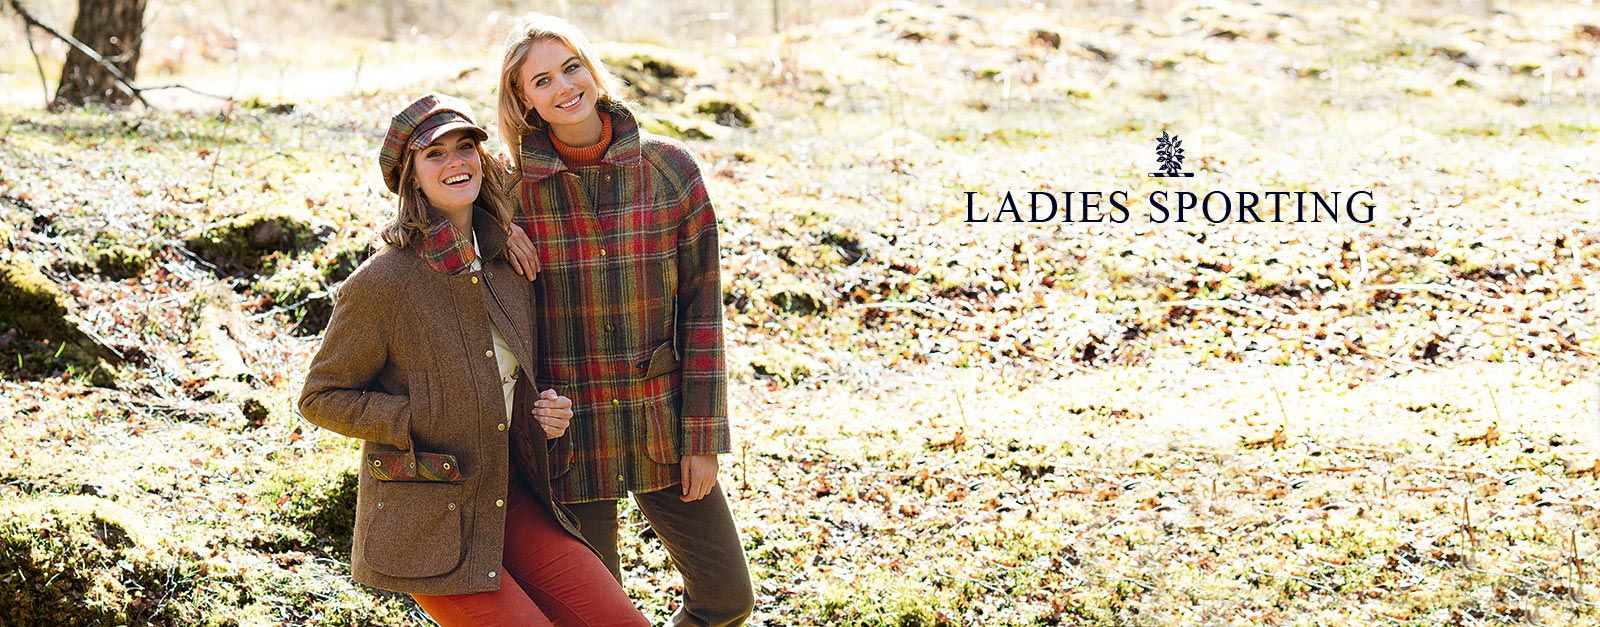 Ladies Sporting Clothing